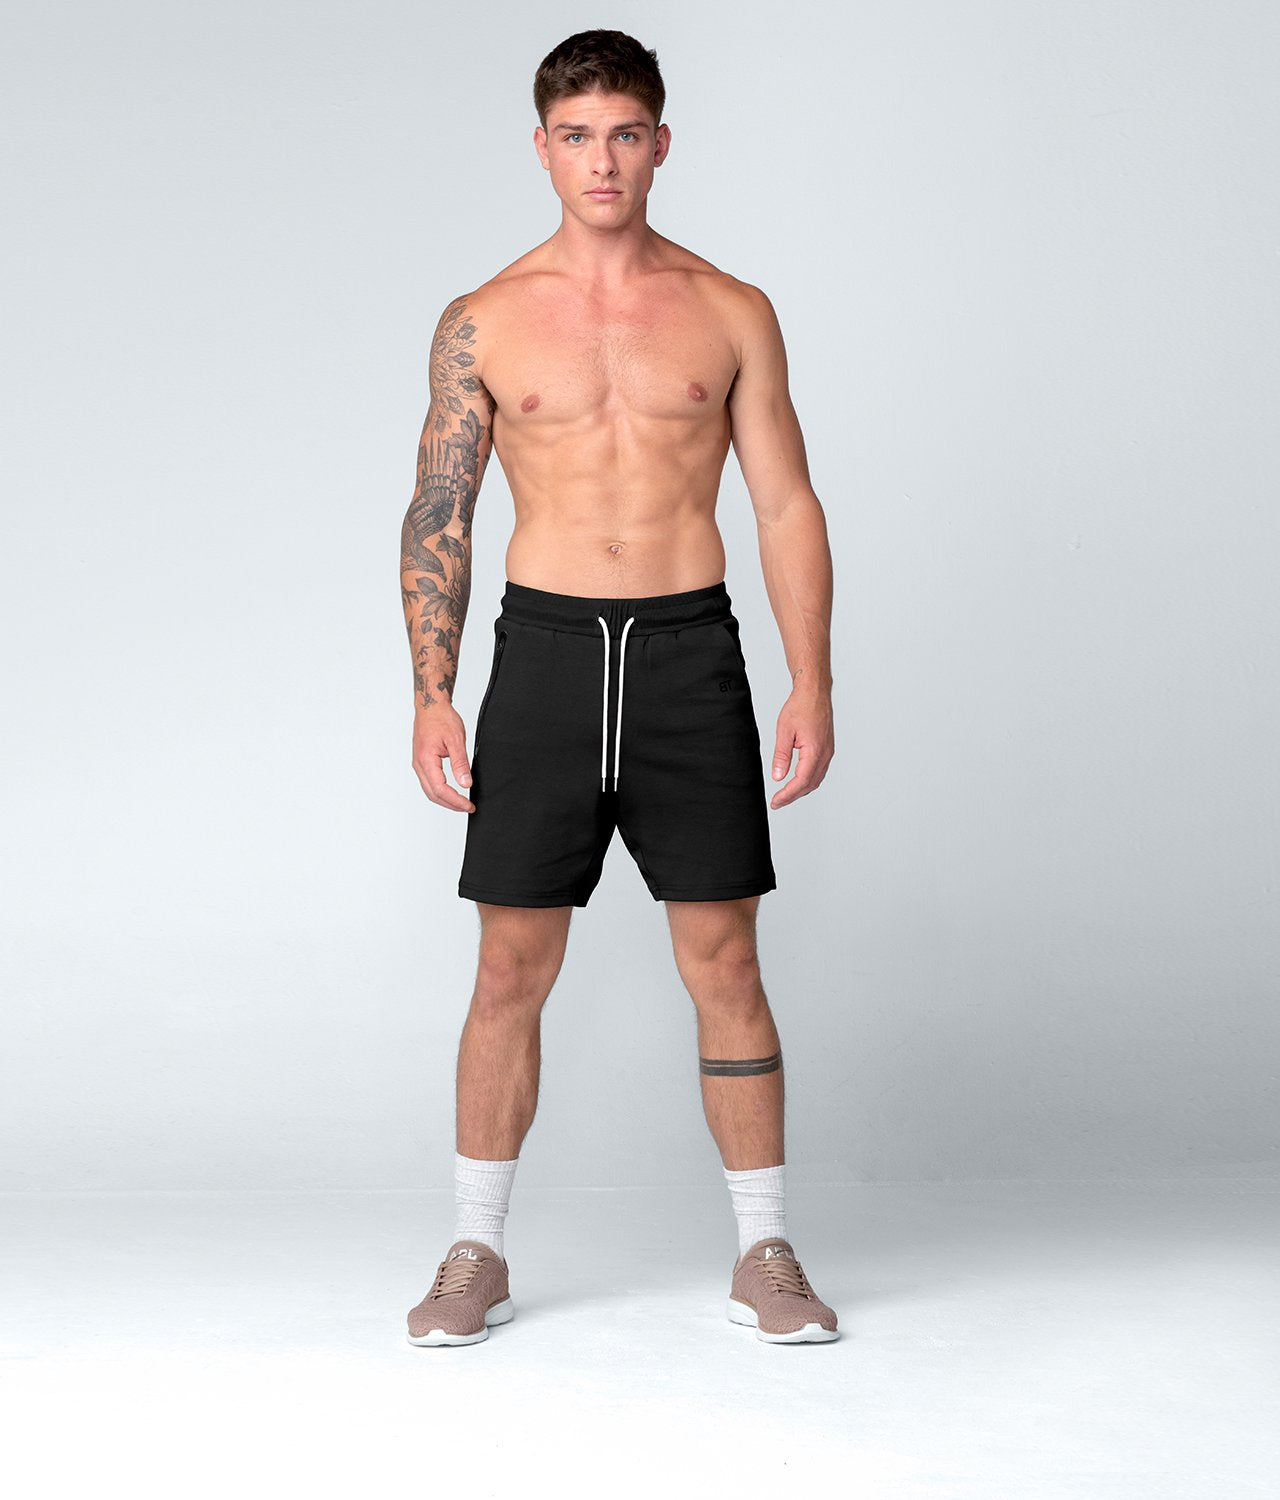 Born Tough United Kingdom Core Fit Zippered Flatlock Seamed Black Gym Workout Shorts for Men